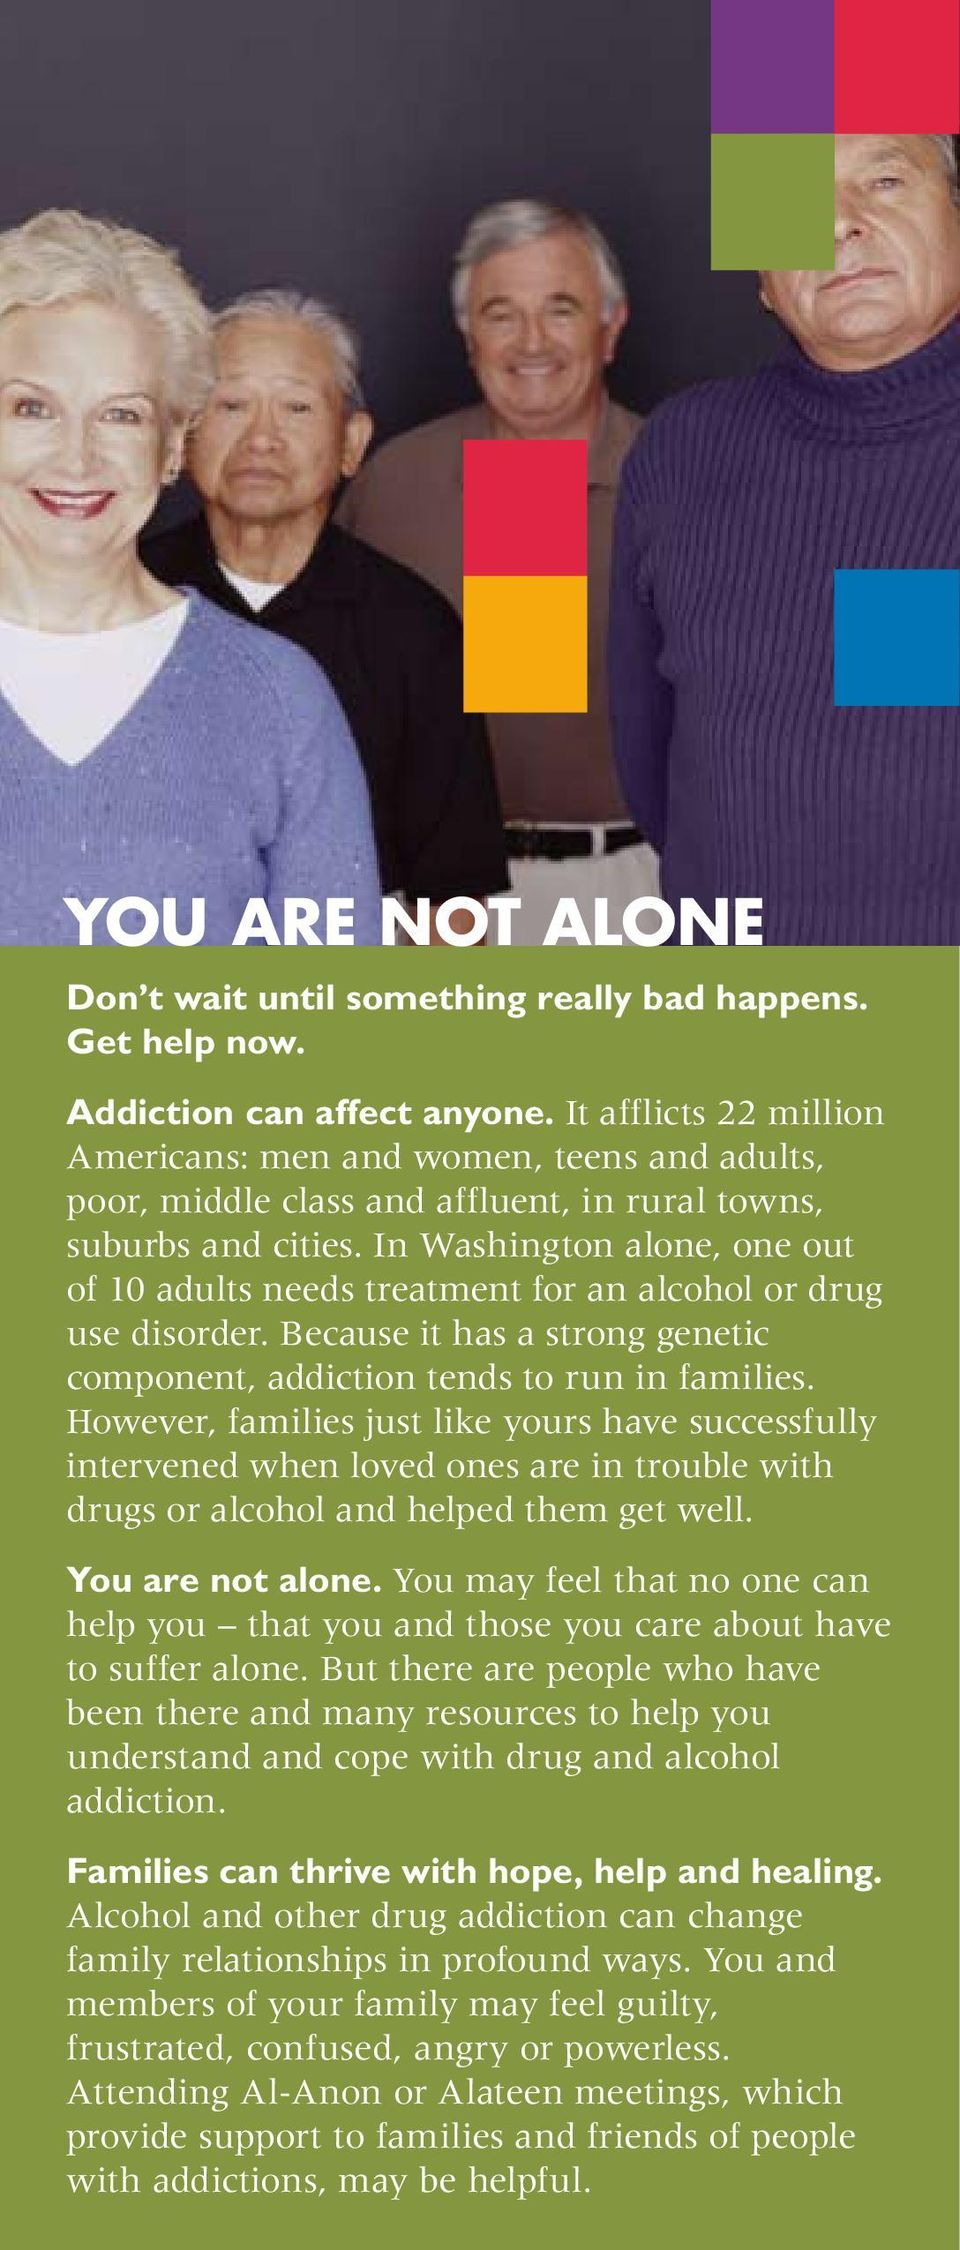 In Washington alone, one out of 10 adults needs treatment for an alcohol or drug use disorder. Because it has a strong genetic component, addiction tends to run in families.